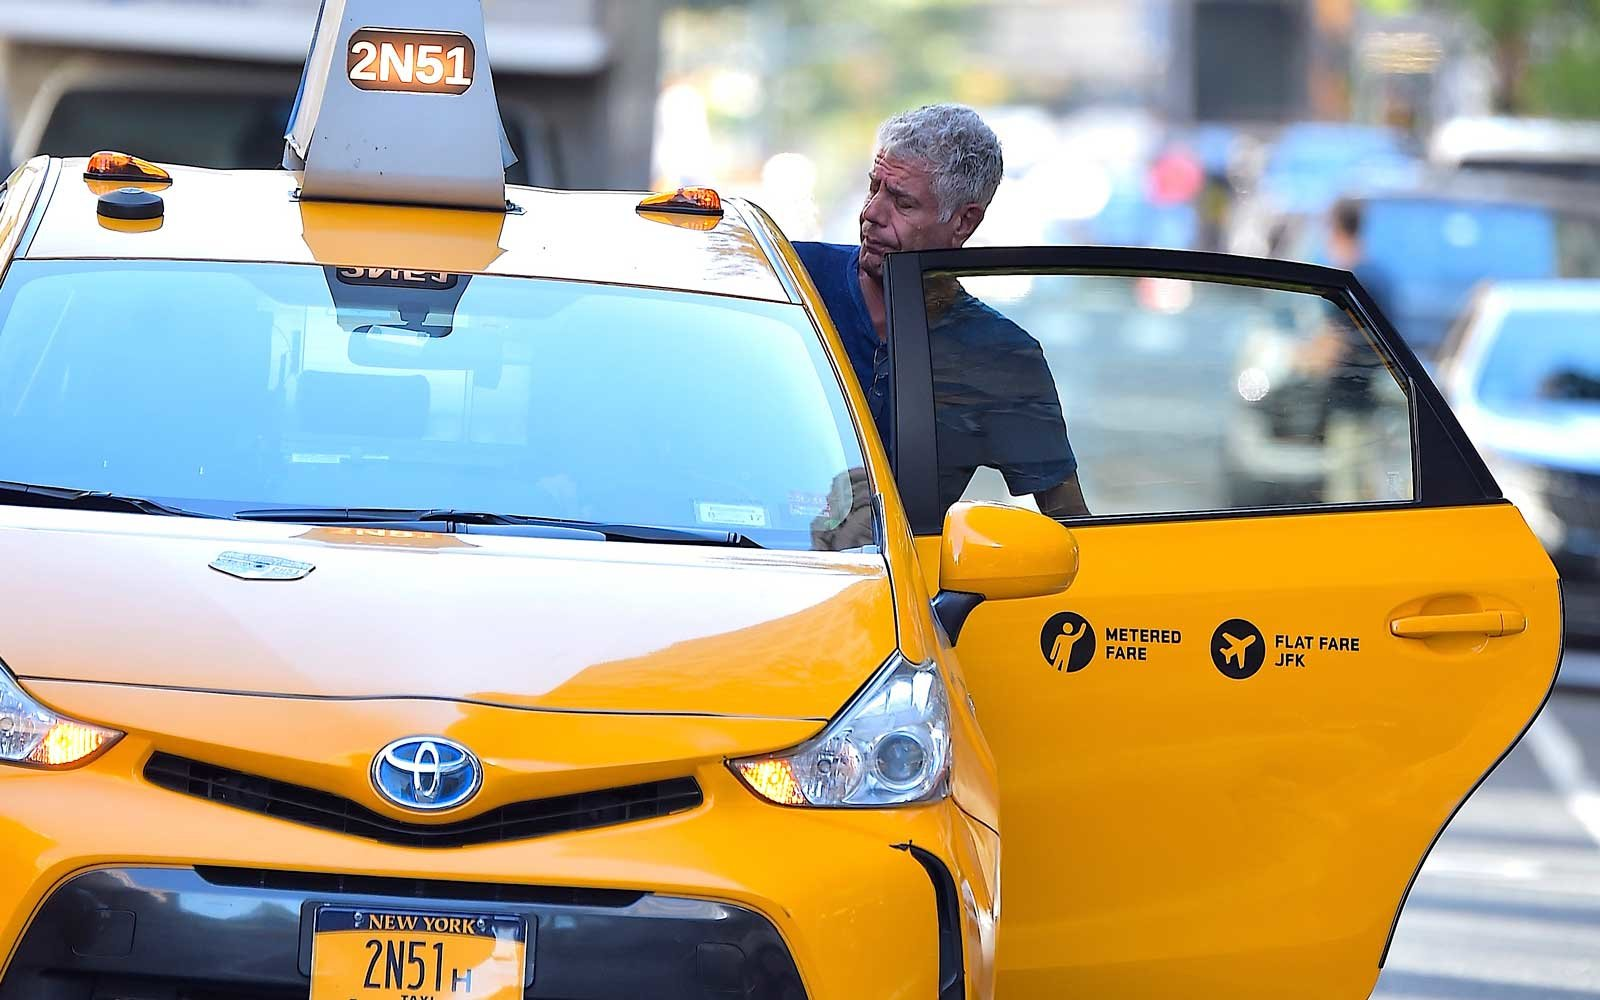 Anthony Bourdain in NYC